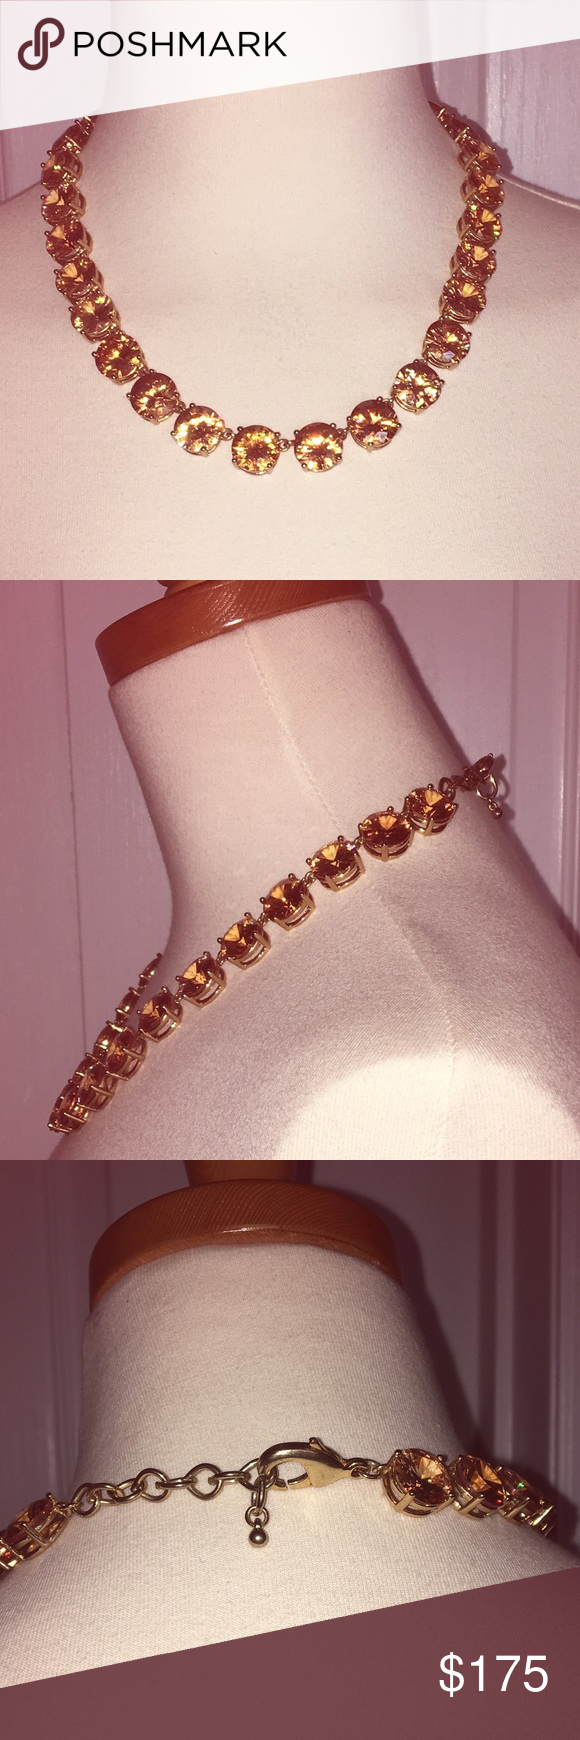 Citrine stone necklace Beautiful costume jewelry piece to dress up any outfit! Unsure of designer but was purchased at Neiman Marcus. Jewelry Necklaces